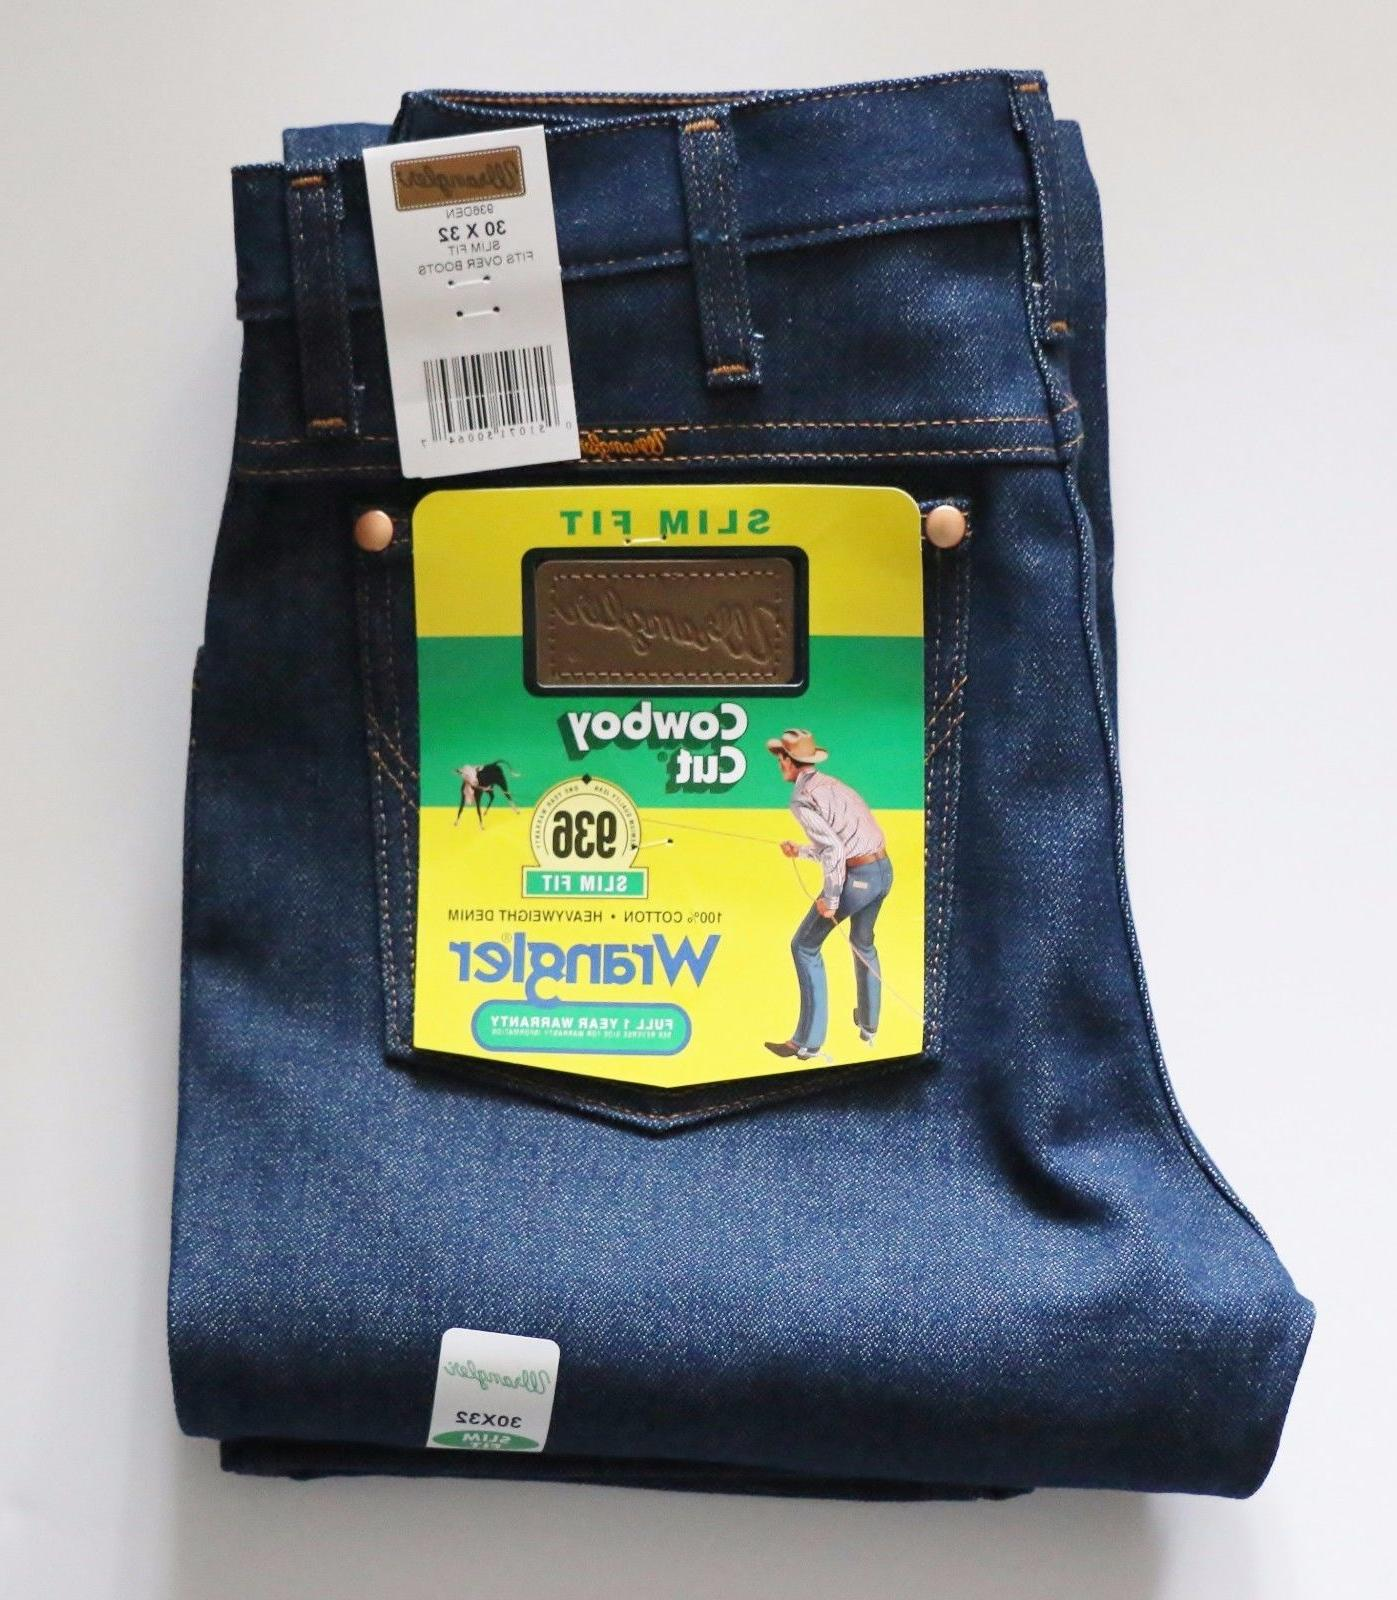 New Wrangler 936 Cowboy Cut Slim Fit Jeans Men's Sizes Rigid